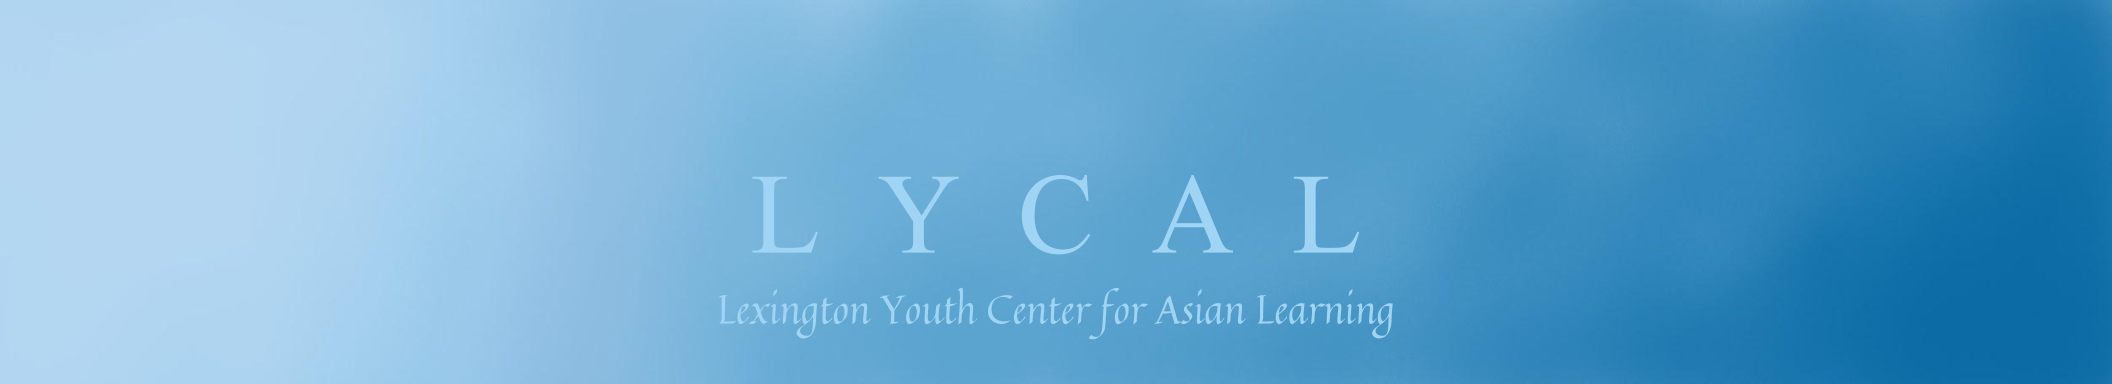 Math Courses — LYCAL: Lexington Youth Center for Asian Learning